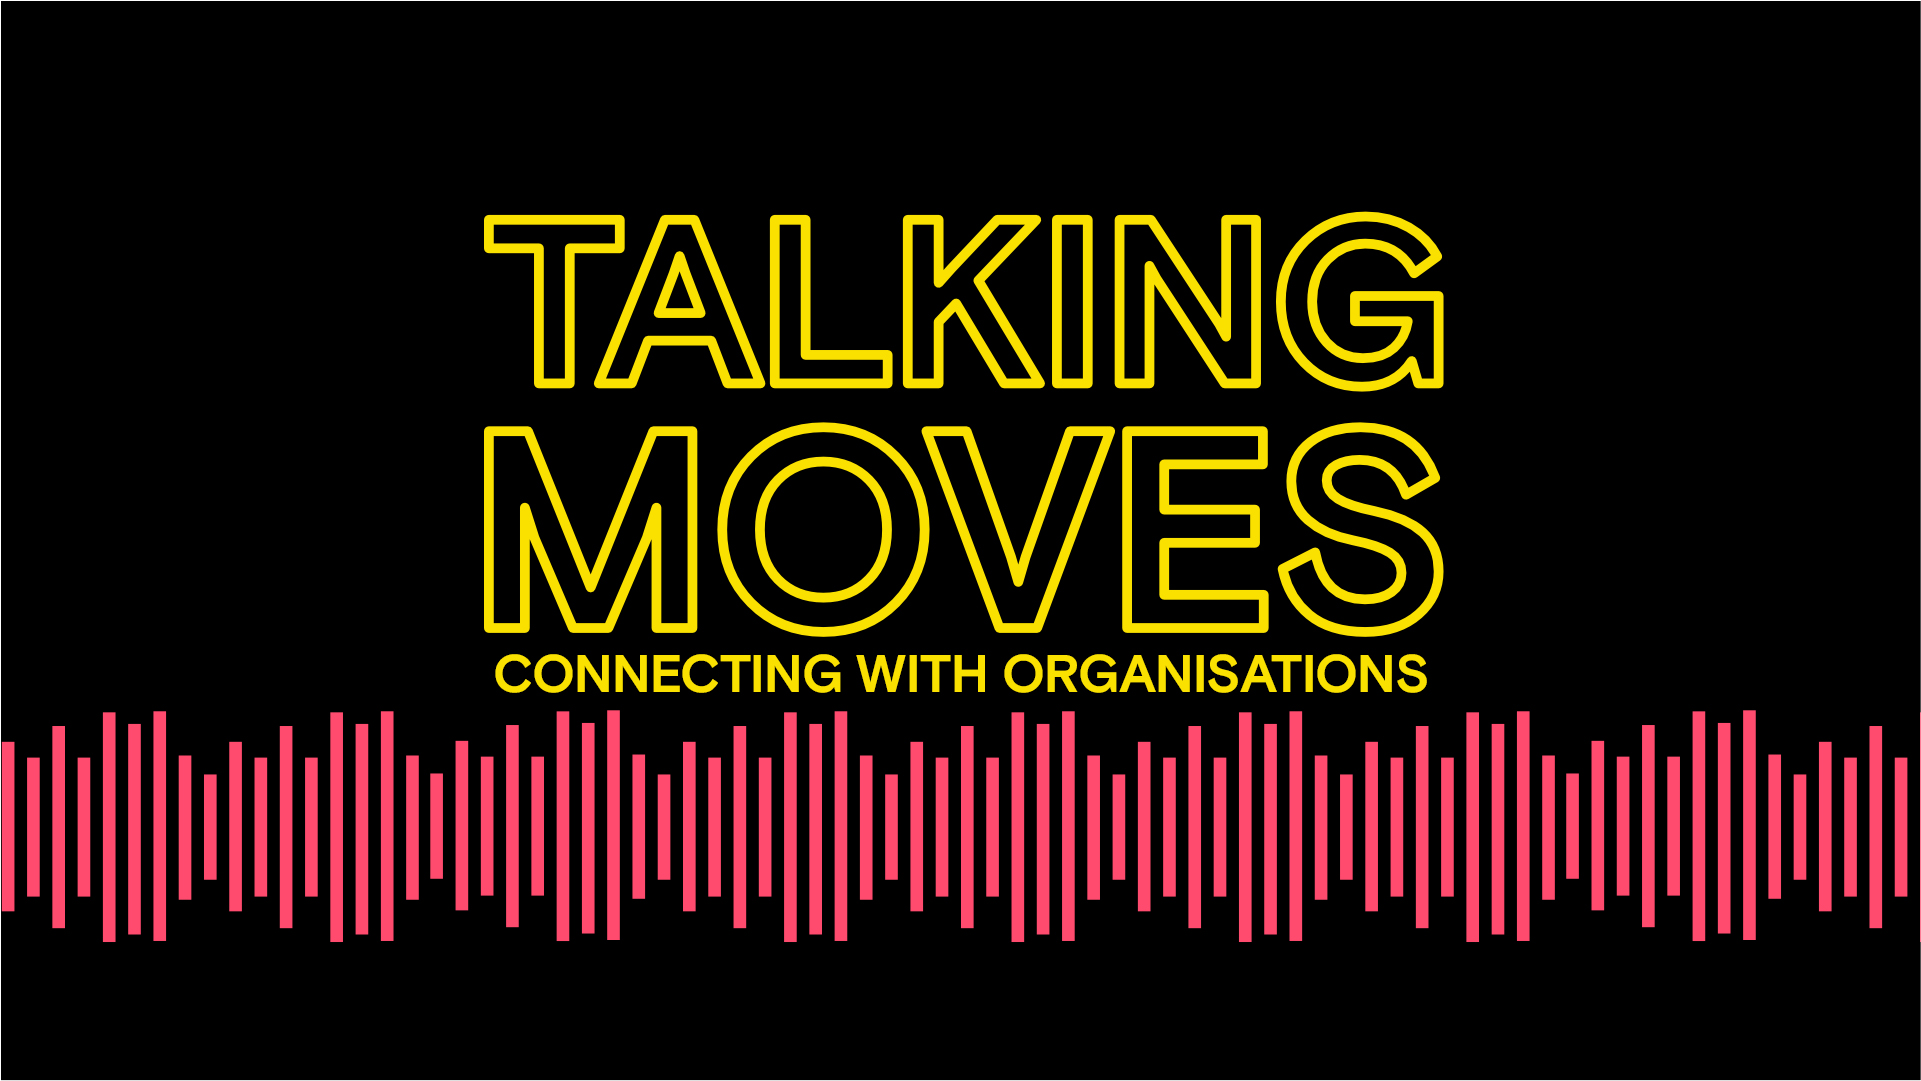 Connecting with organisations title